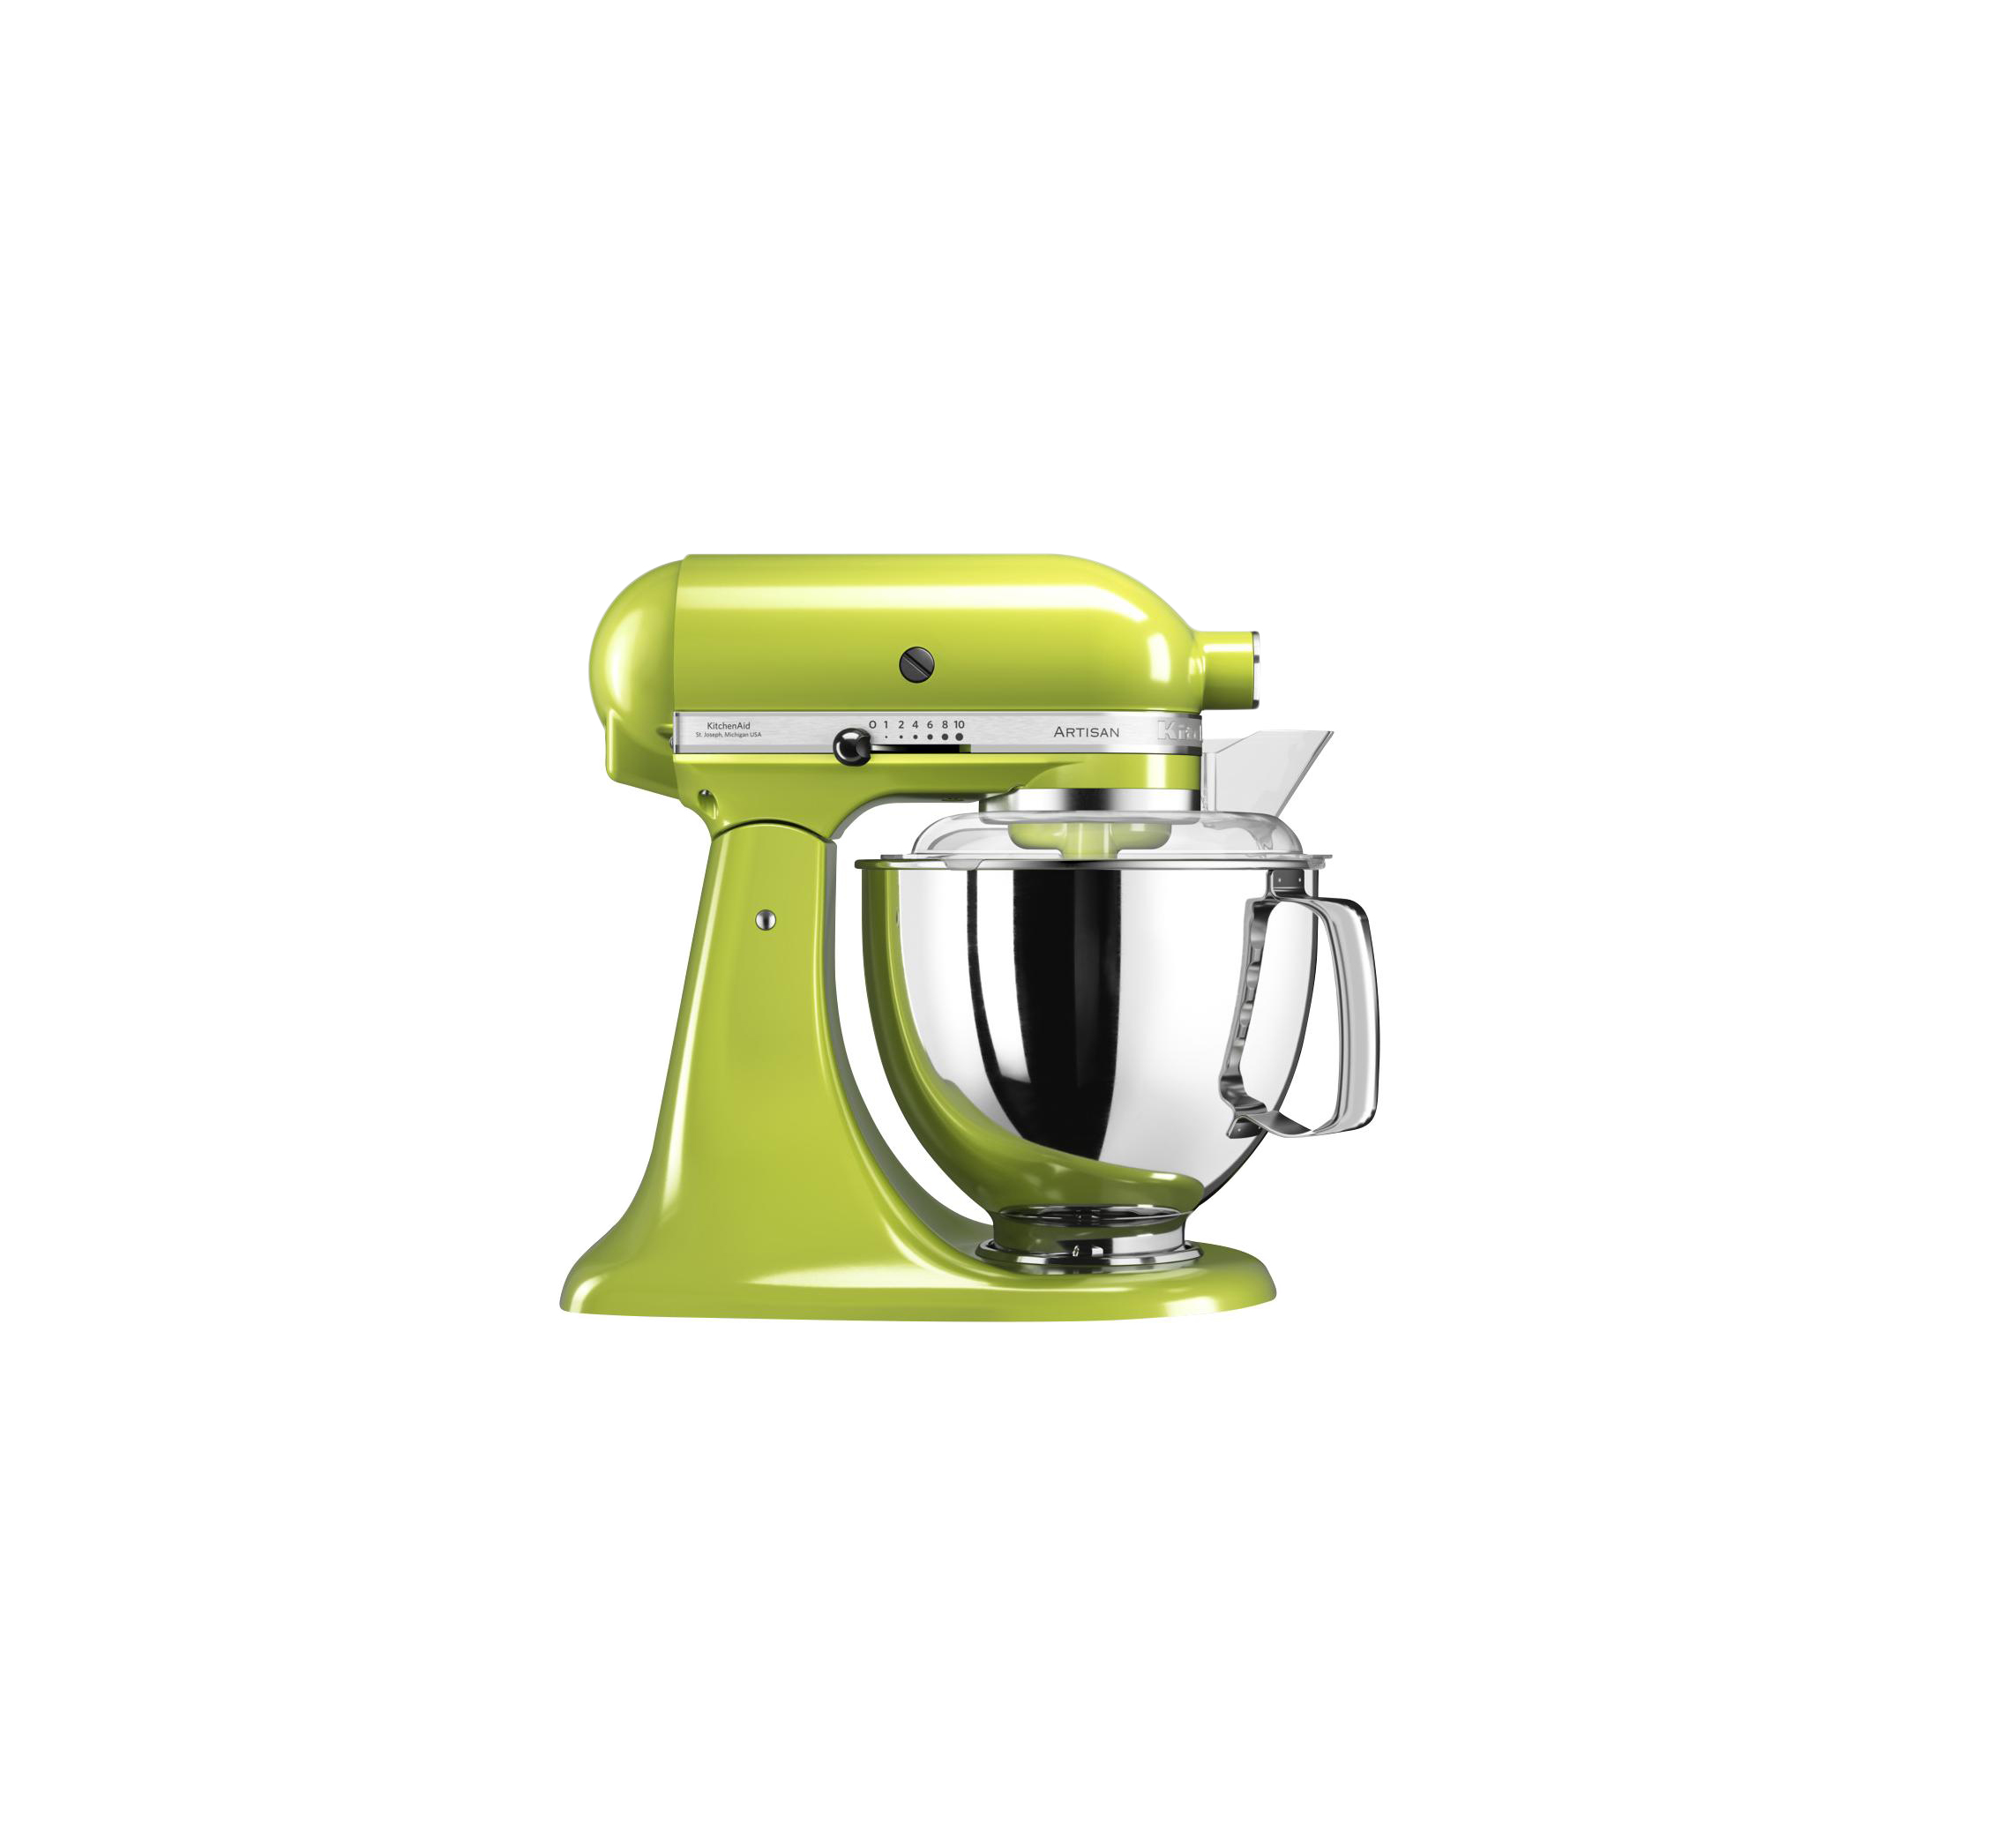 John Lewis KitchenAid Green Apple £549.95